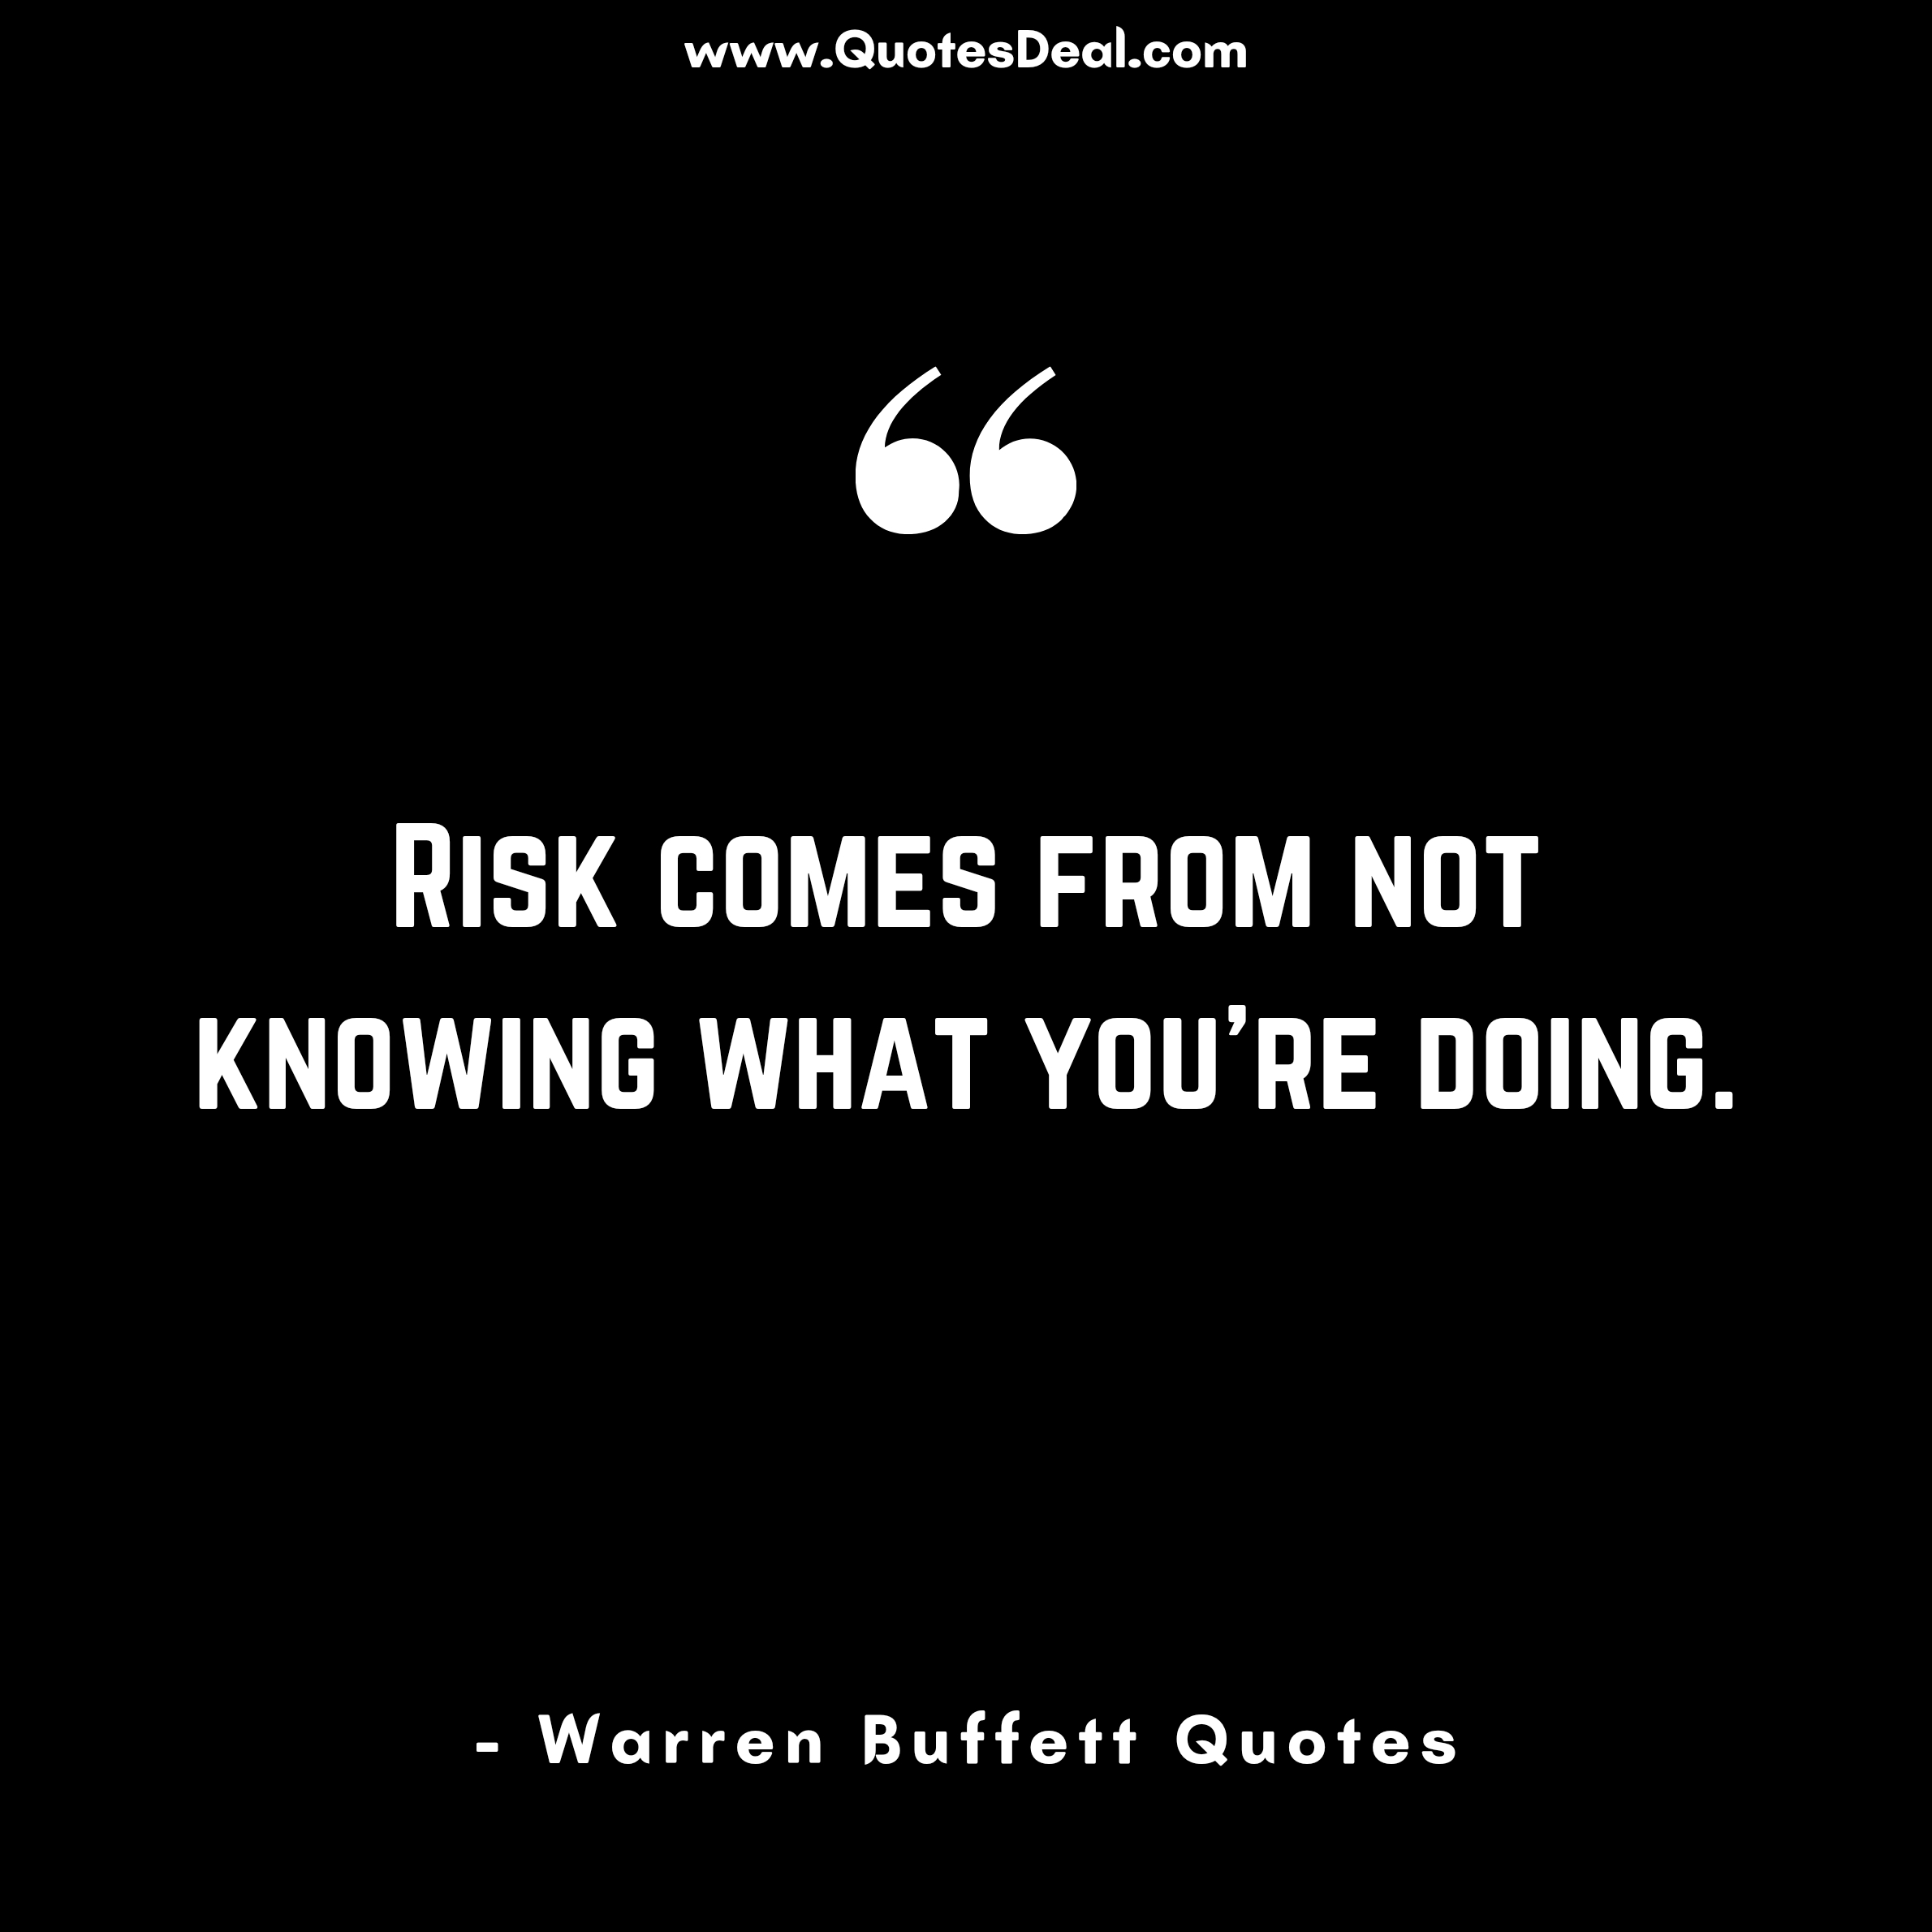 Risk comes from not knowing